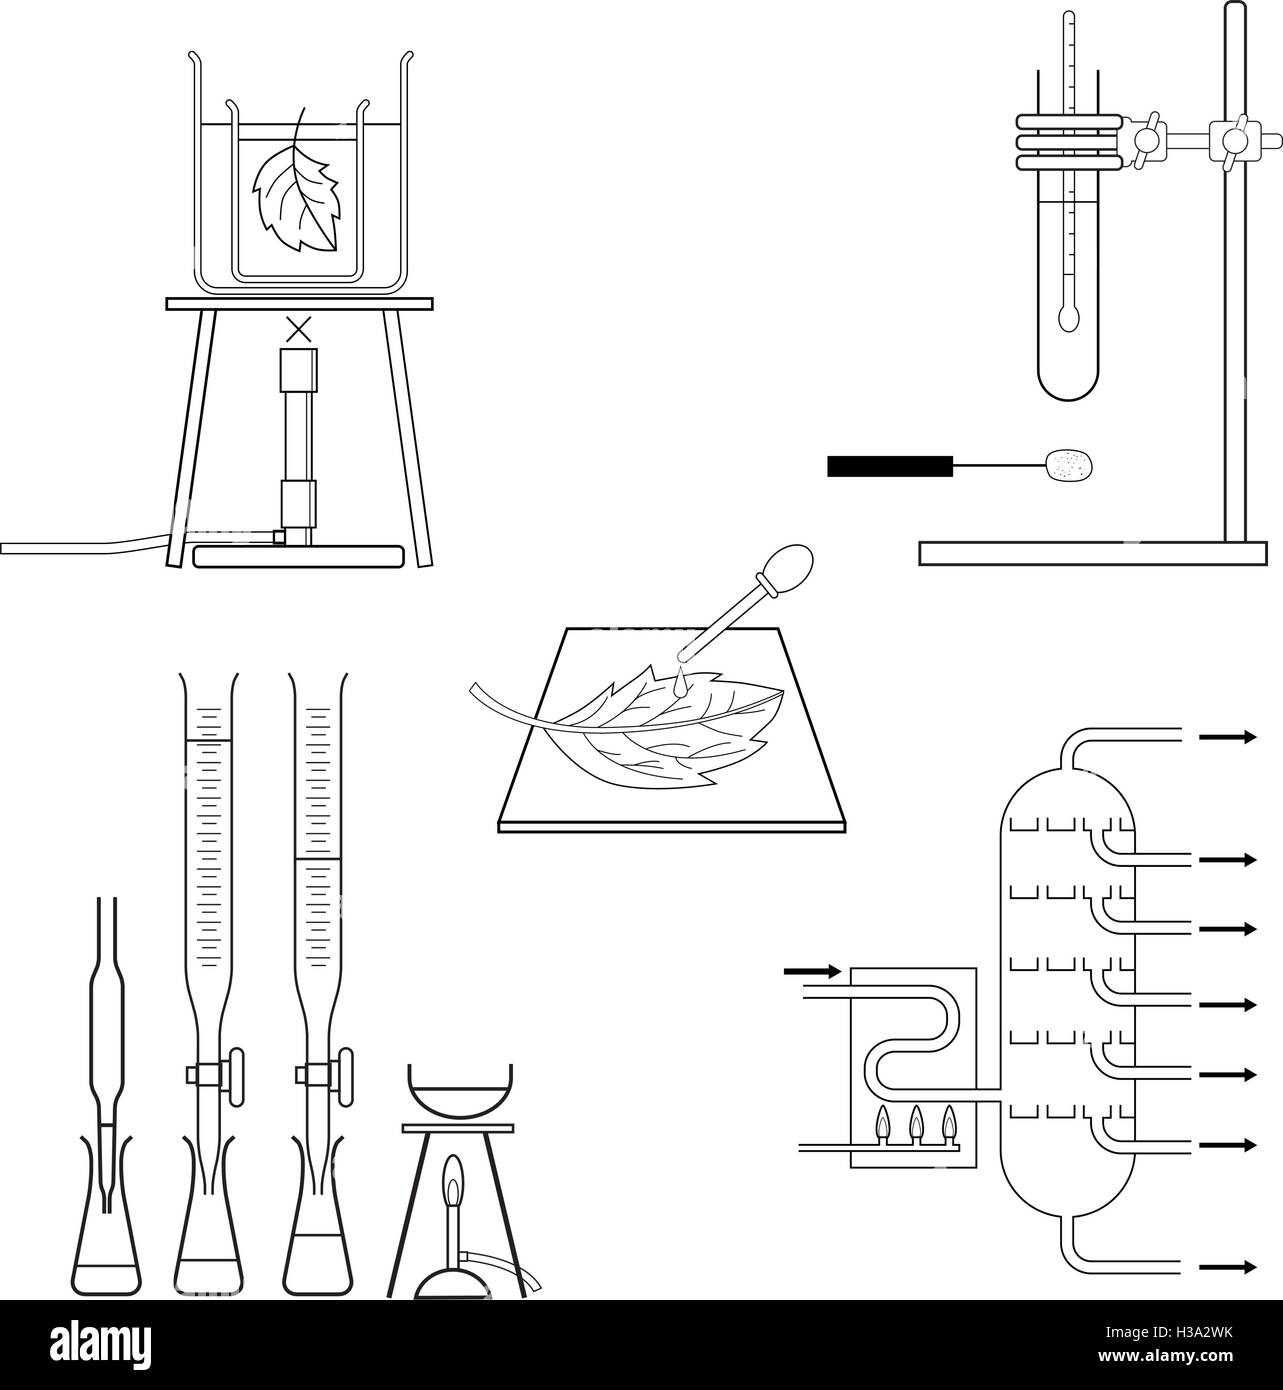 Test Tube Bunsen Burner Stock Photos Amp Test Tube Bunsen Burner Stock Images